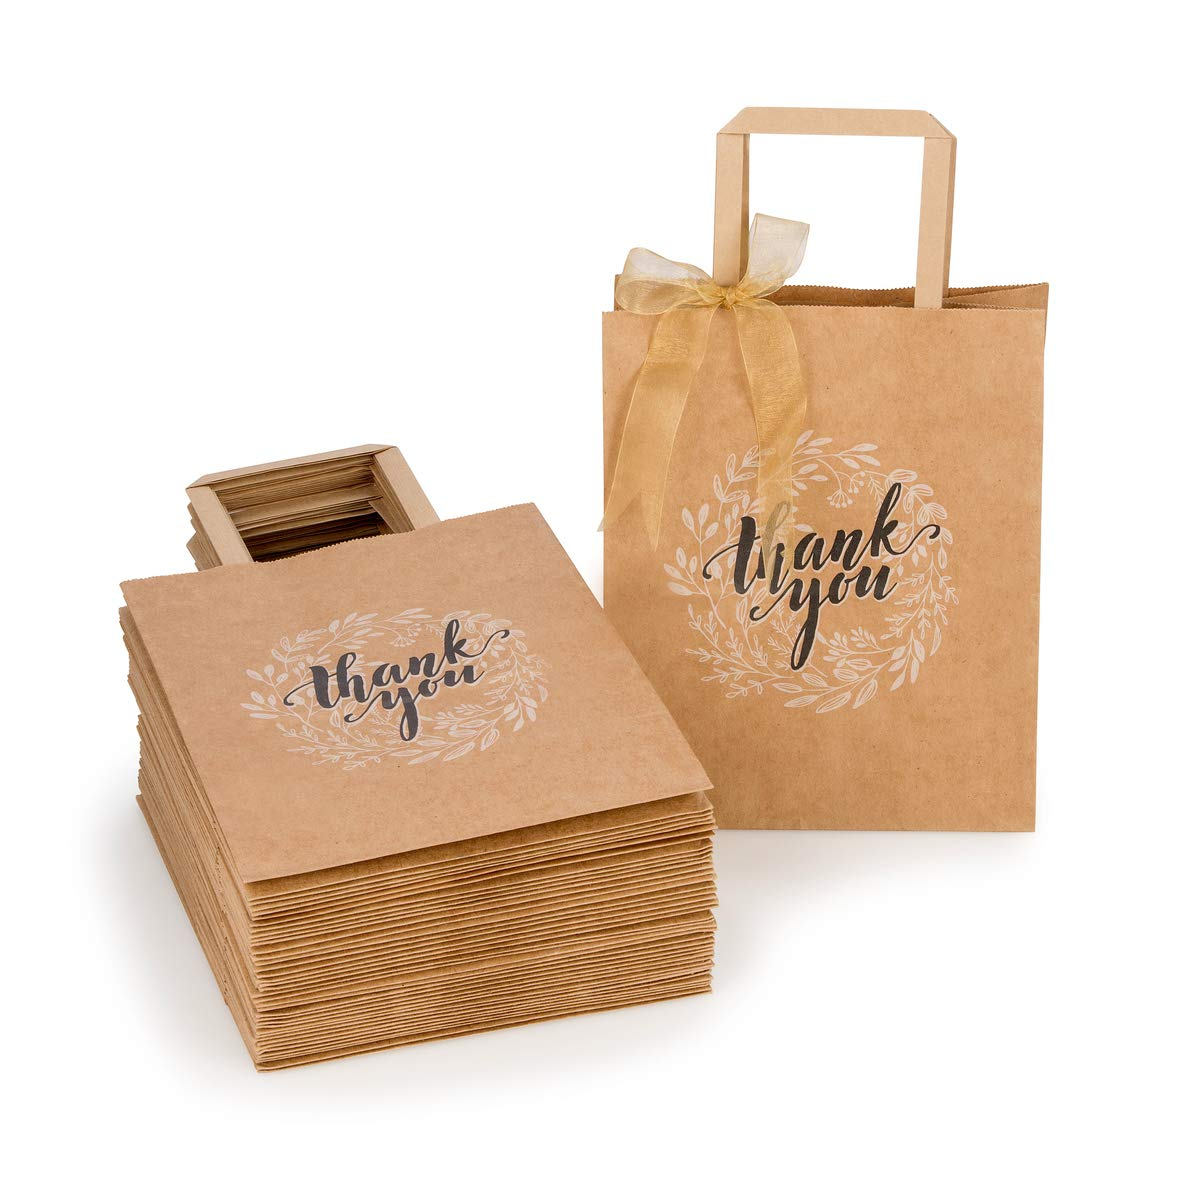 OSpecks Medium Thank You Gift Bags Bulk with Handle (No Bow or Ribbon), Brown Kraft Paper Bags for Retail Shopping, Wedding, Goodies, Merchandise for ...